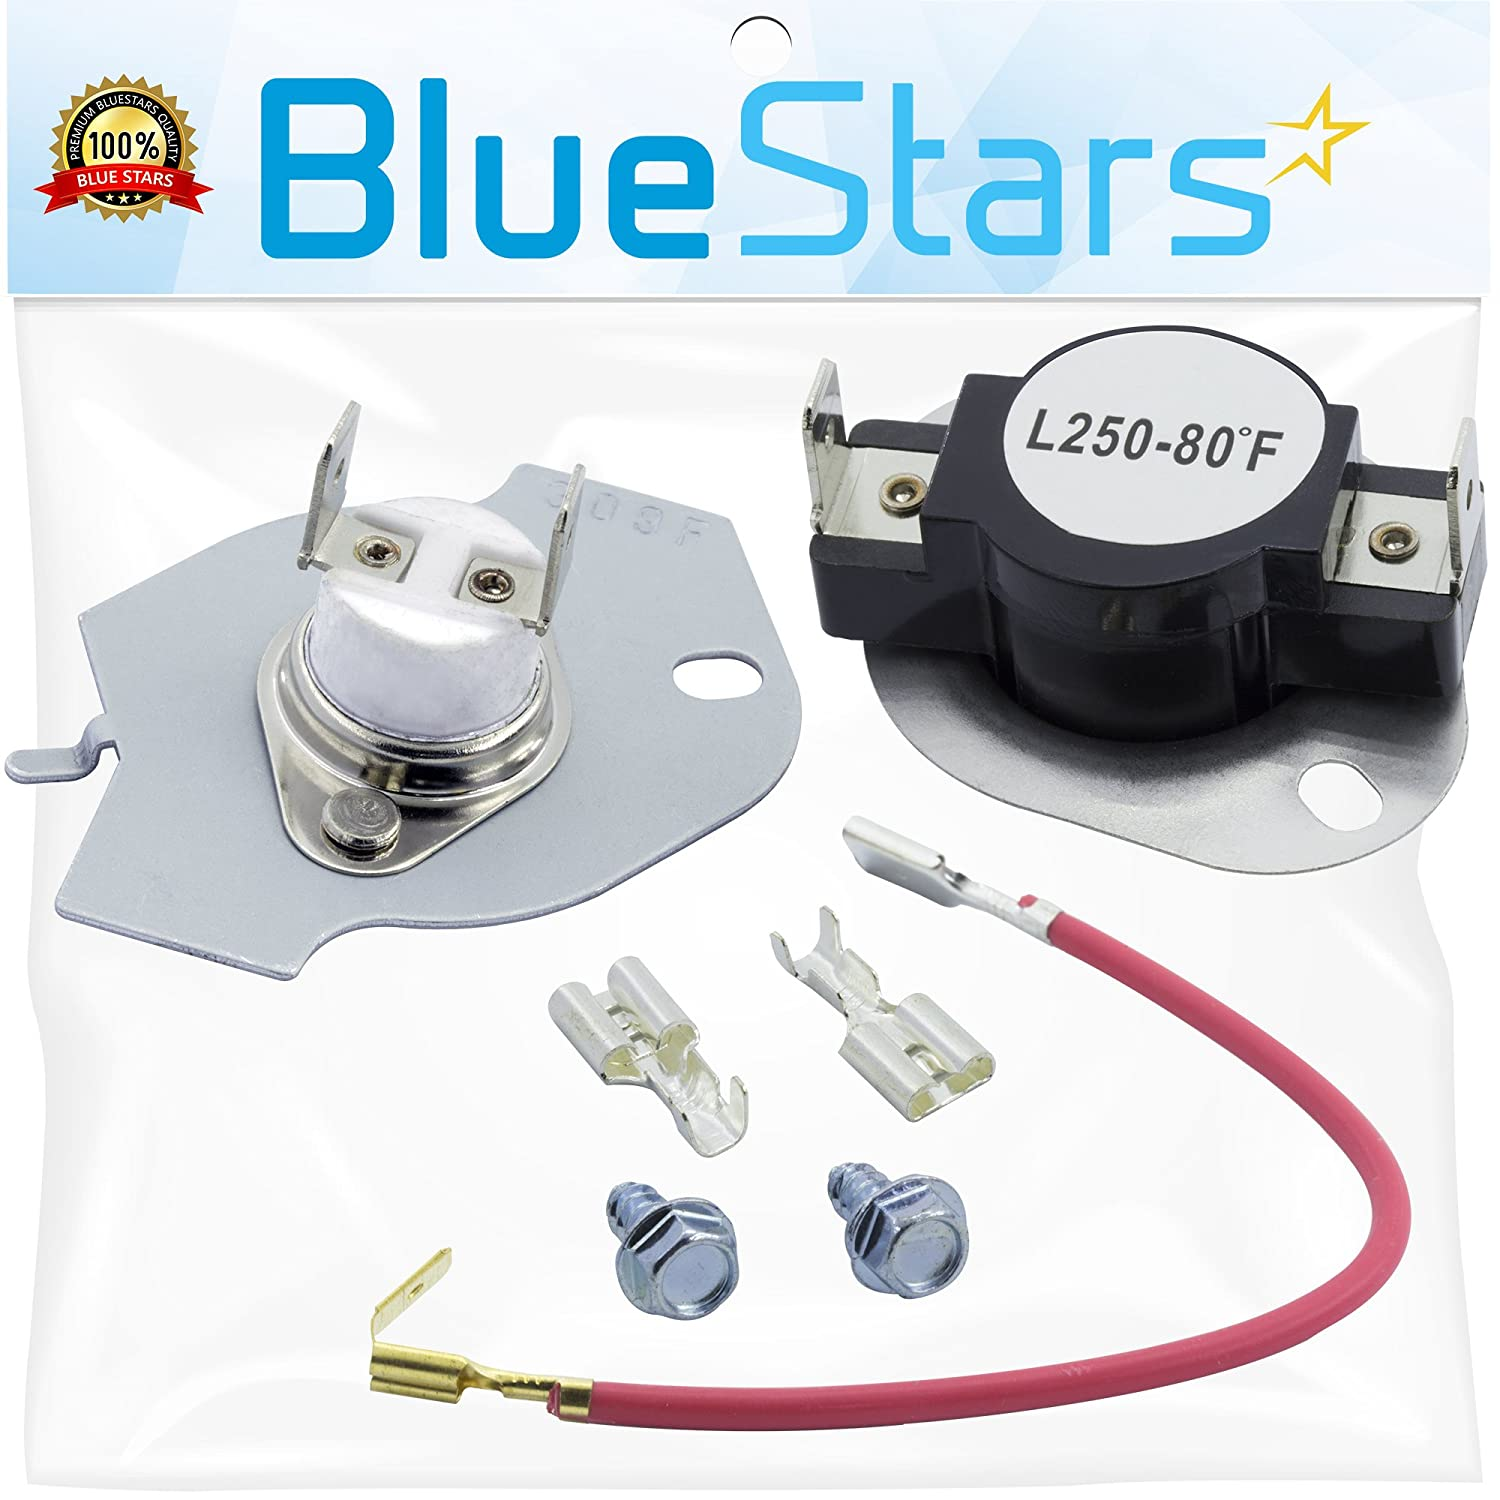 279816 Dryer Thermostat Kit Replacement by Blue Stars - Exact Fit for Whirlpool & Kenmore Dryer - Simple Instructions Included - Replaces 3399848 3977393 AP3094244